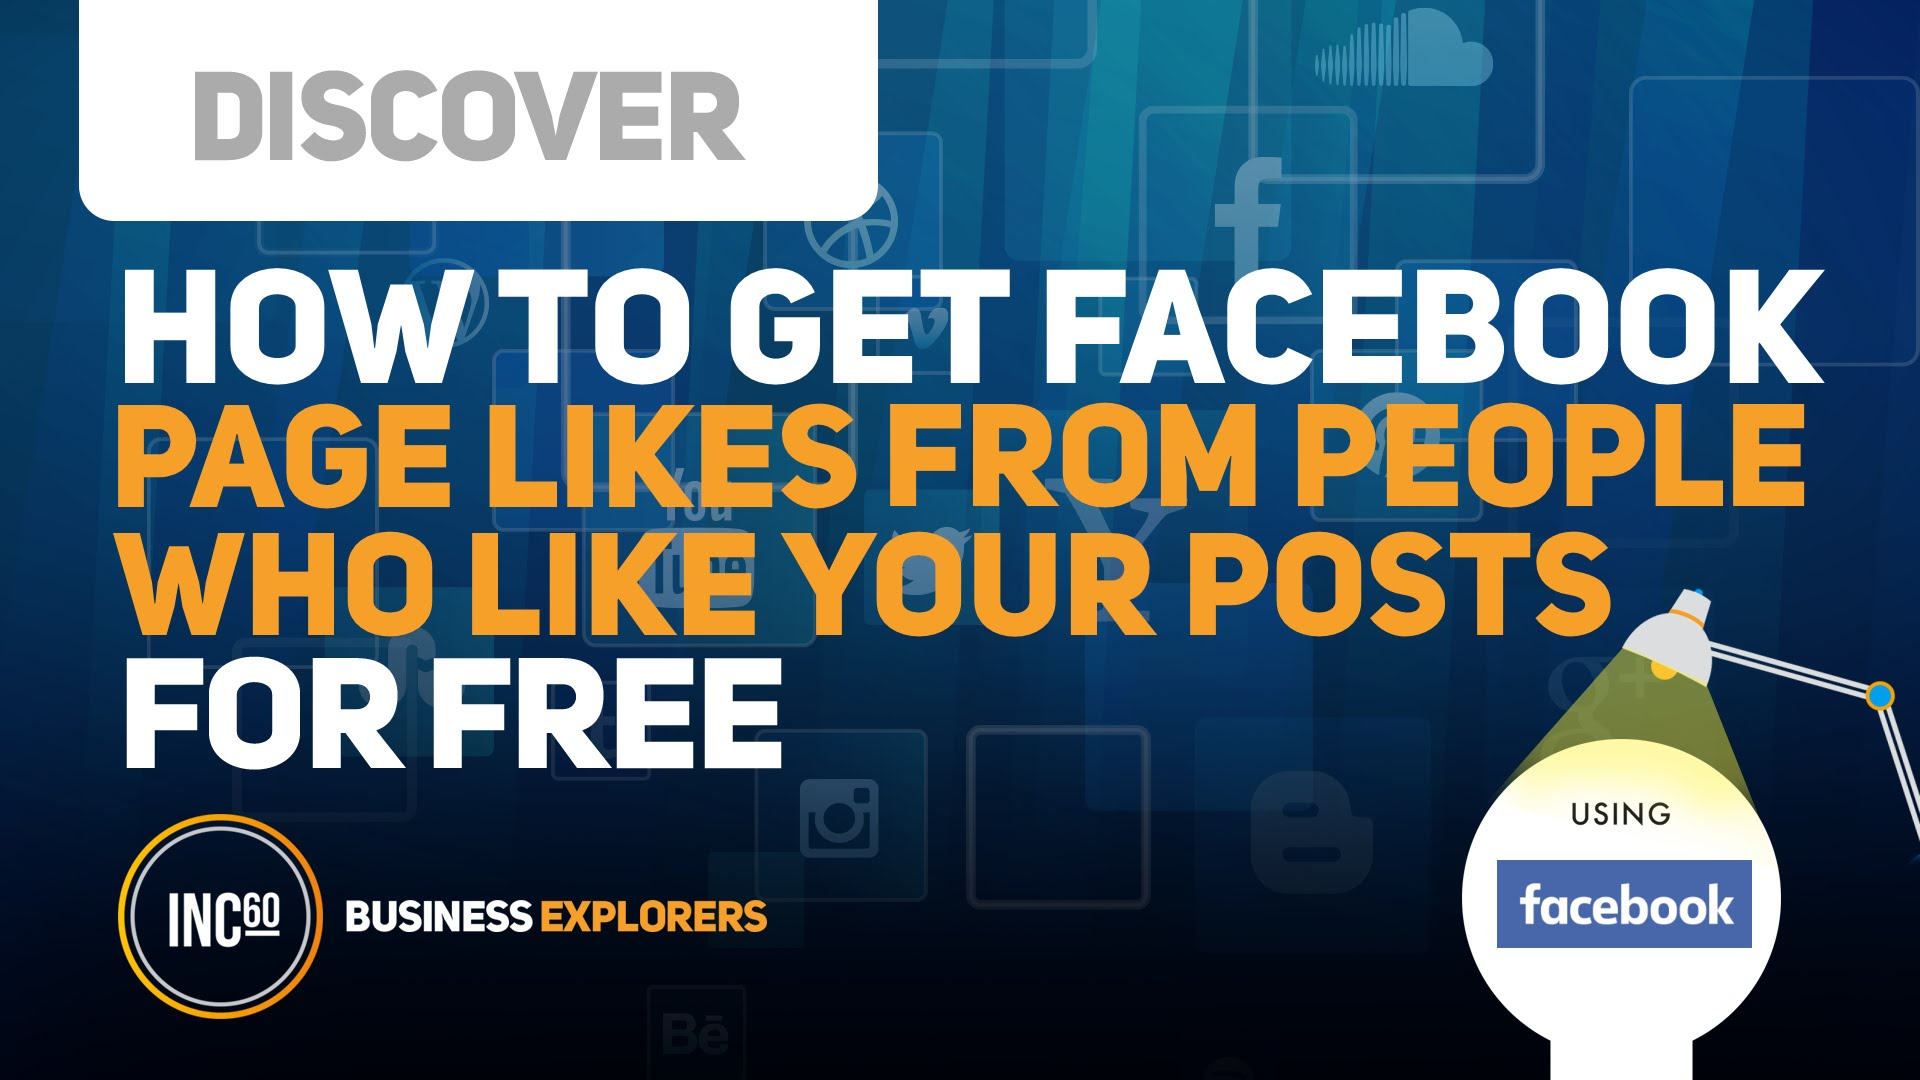 7 Ways to Increase Facebook Business Page Likes